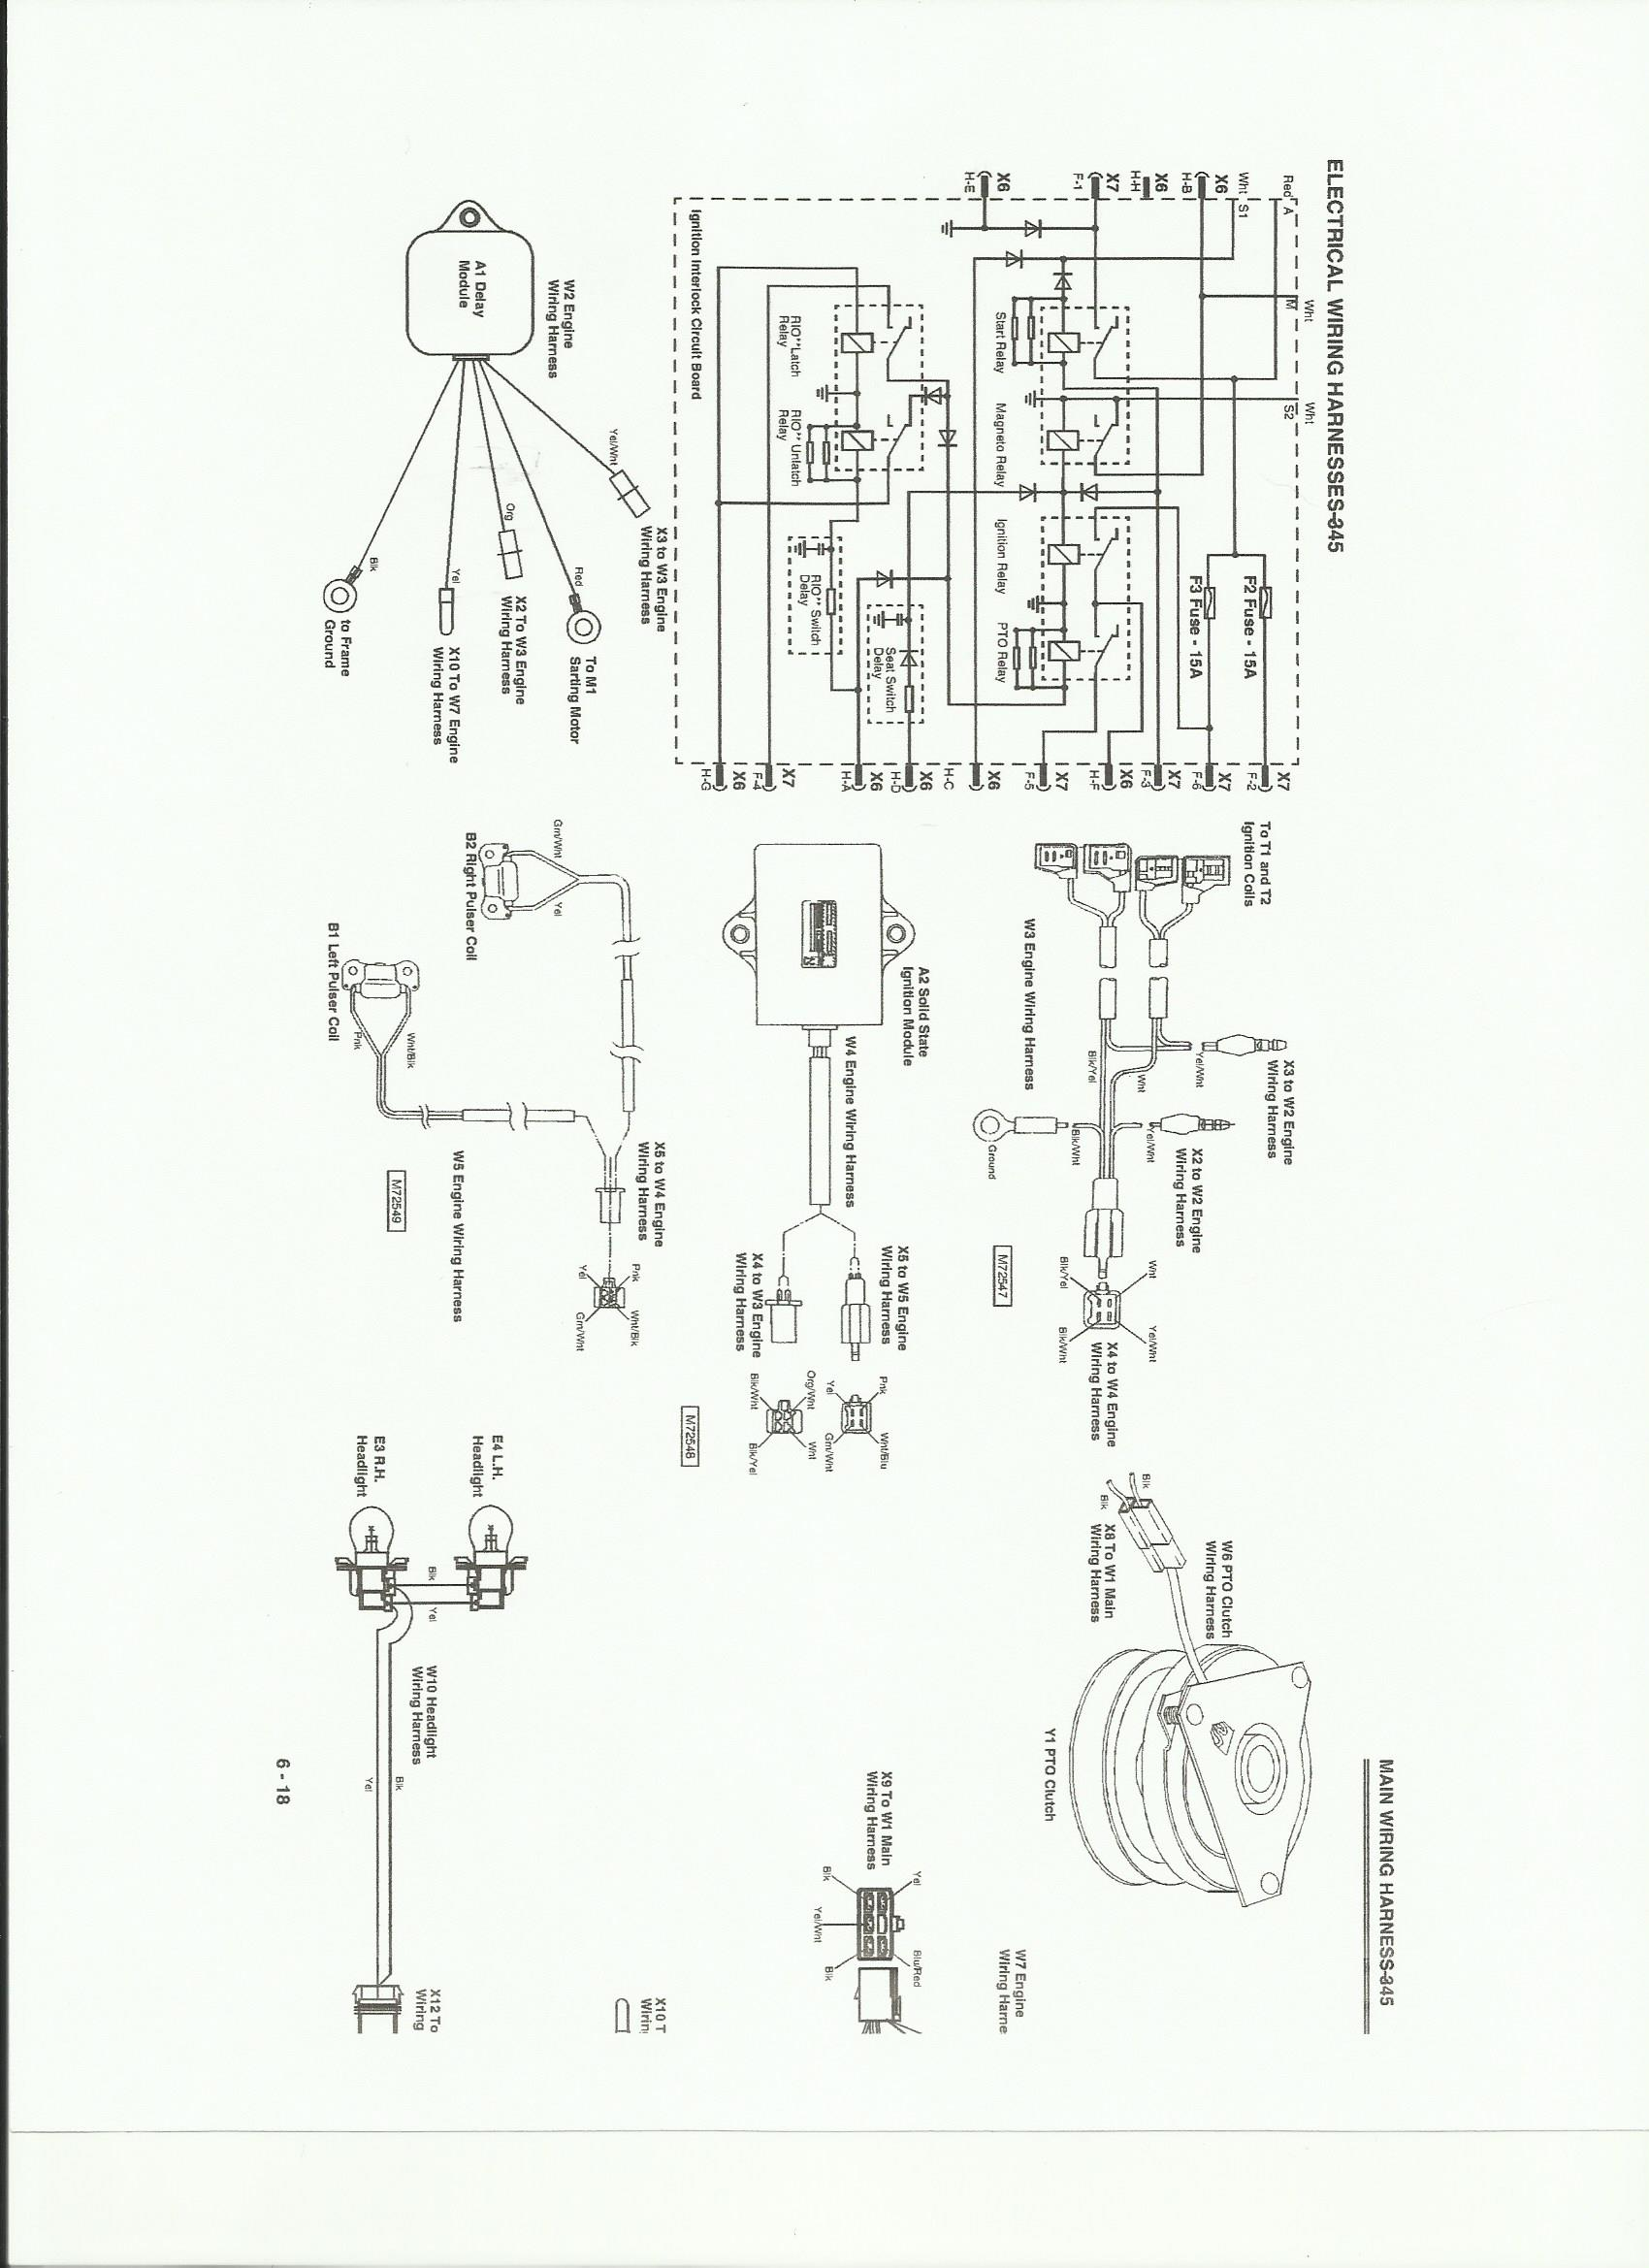 Need A 345 Wiring Diagram  Pdf Please - Mytractorforum Com